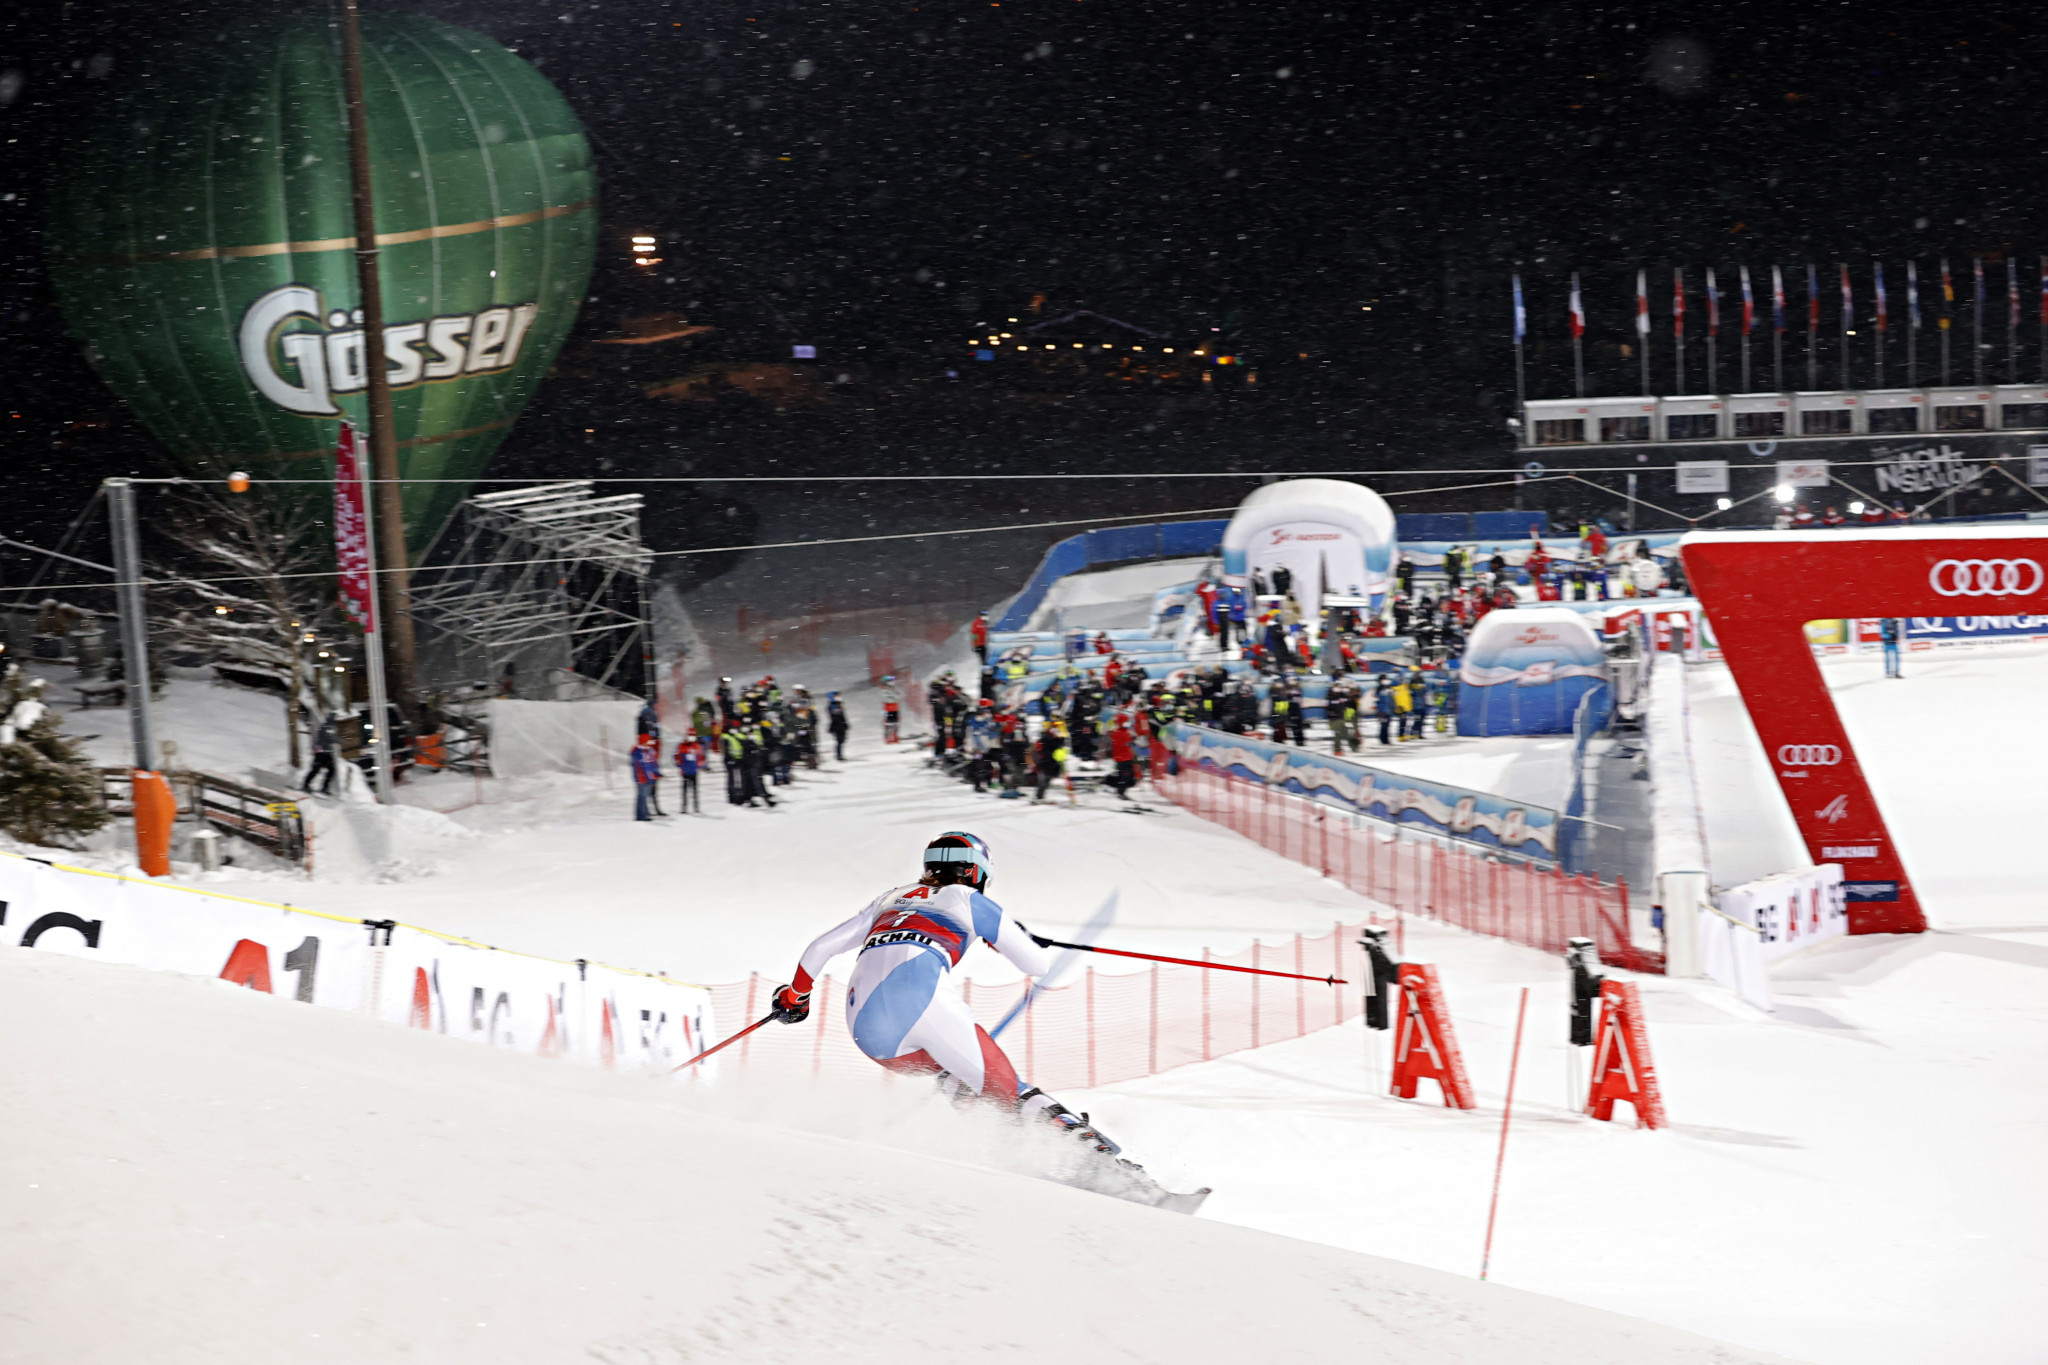 Flachau is scheduled to stage two men's slalom races just four days after hosting a women's World Cup contest ©Getty Images